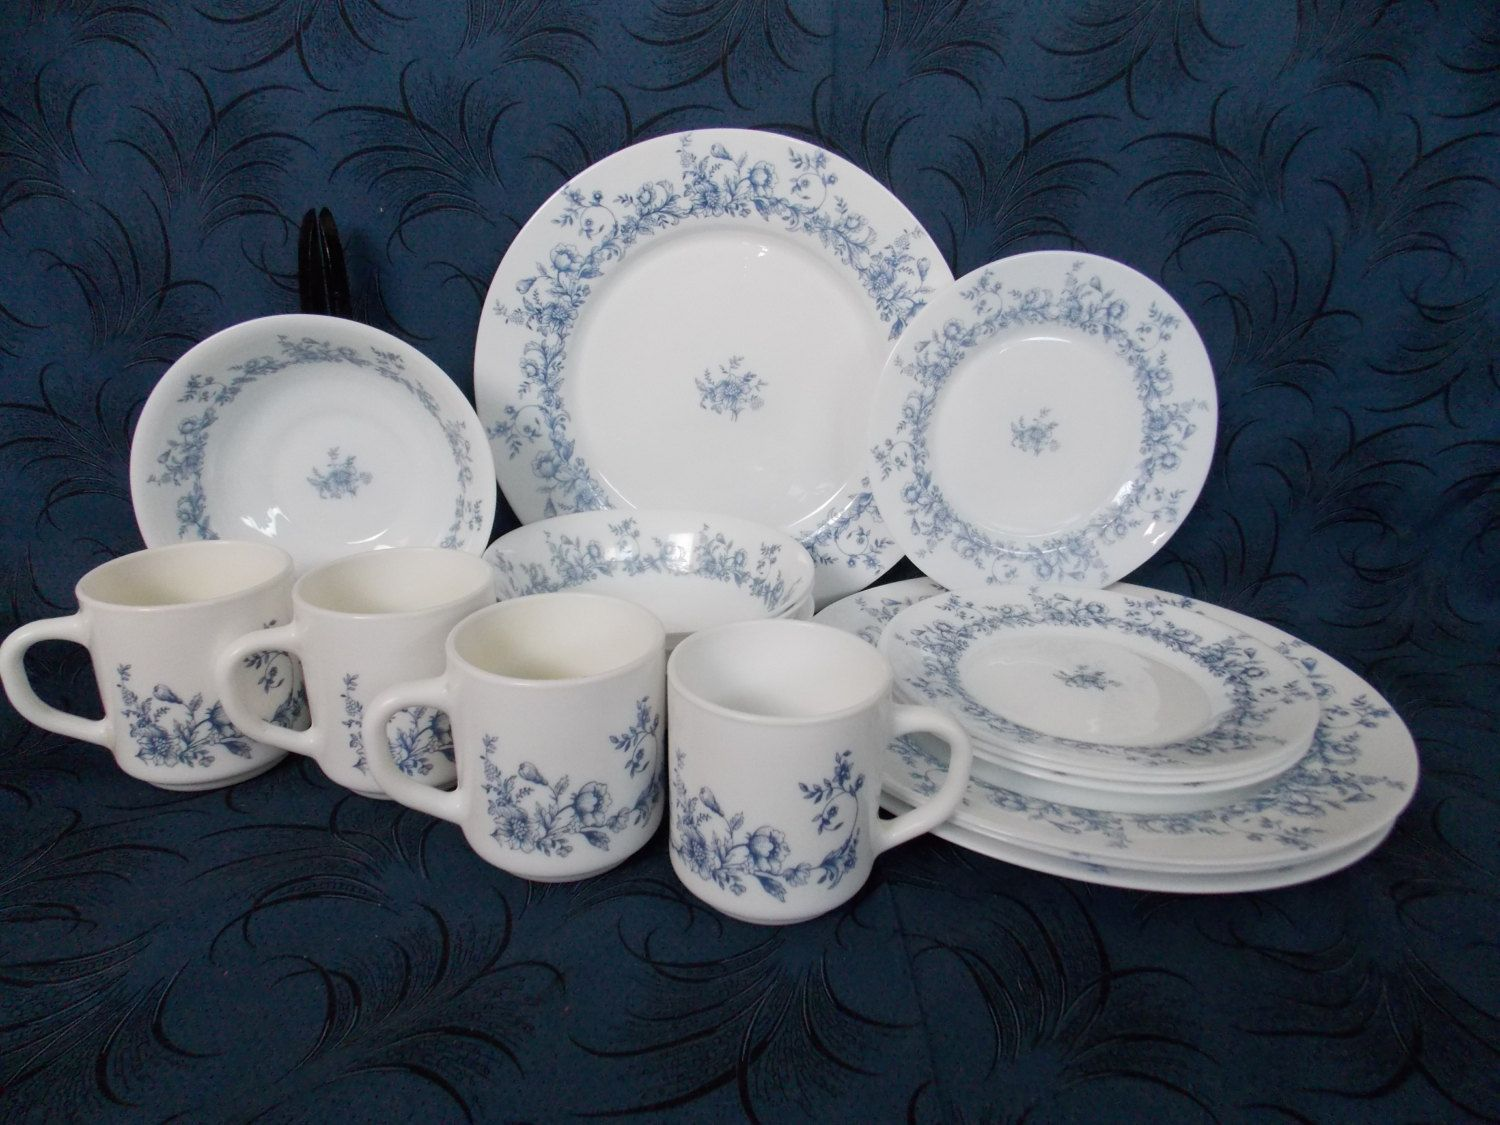 16 Piece Dinnerware Set Vintage Arcopal France Glenwood White Milk Glass with Blue Floral Pattern : arcopal dinnerware patterns - pezcame.com